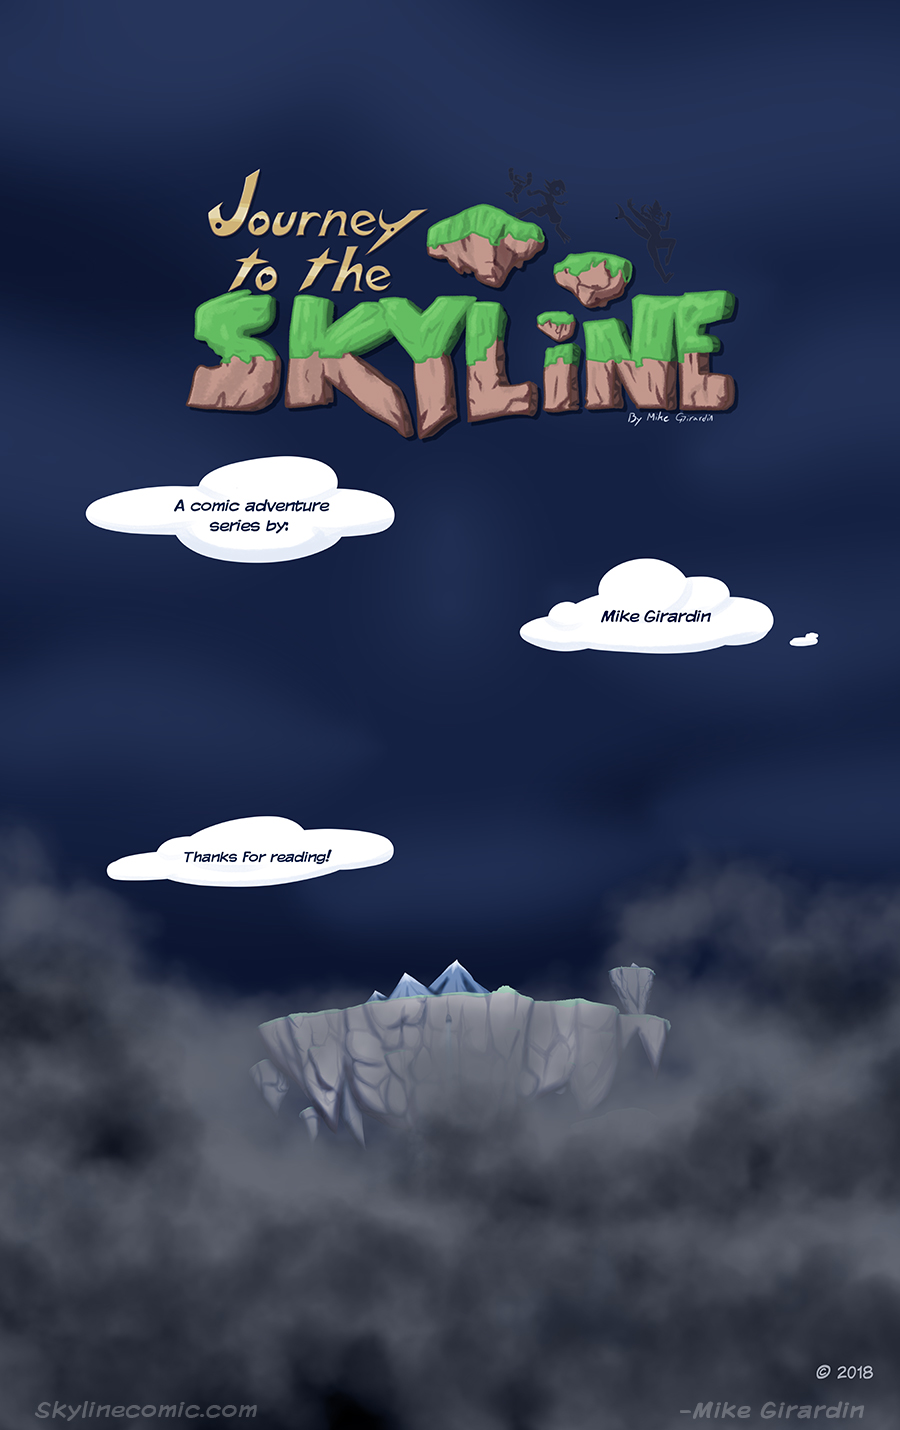 Journey to the Skyline issue 04 credits